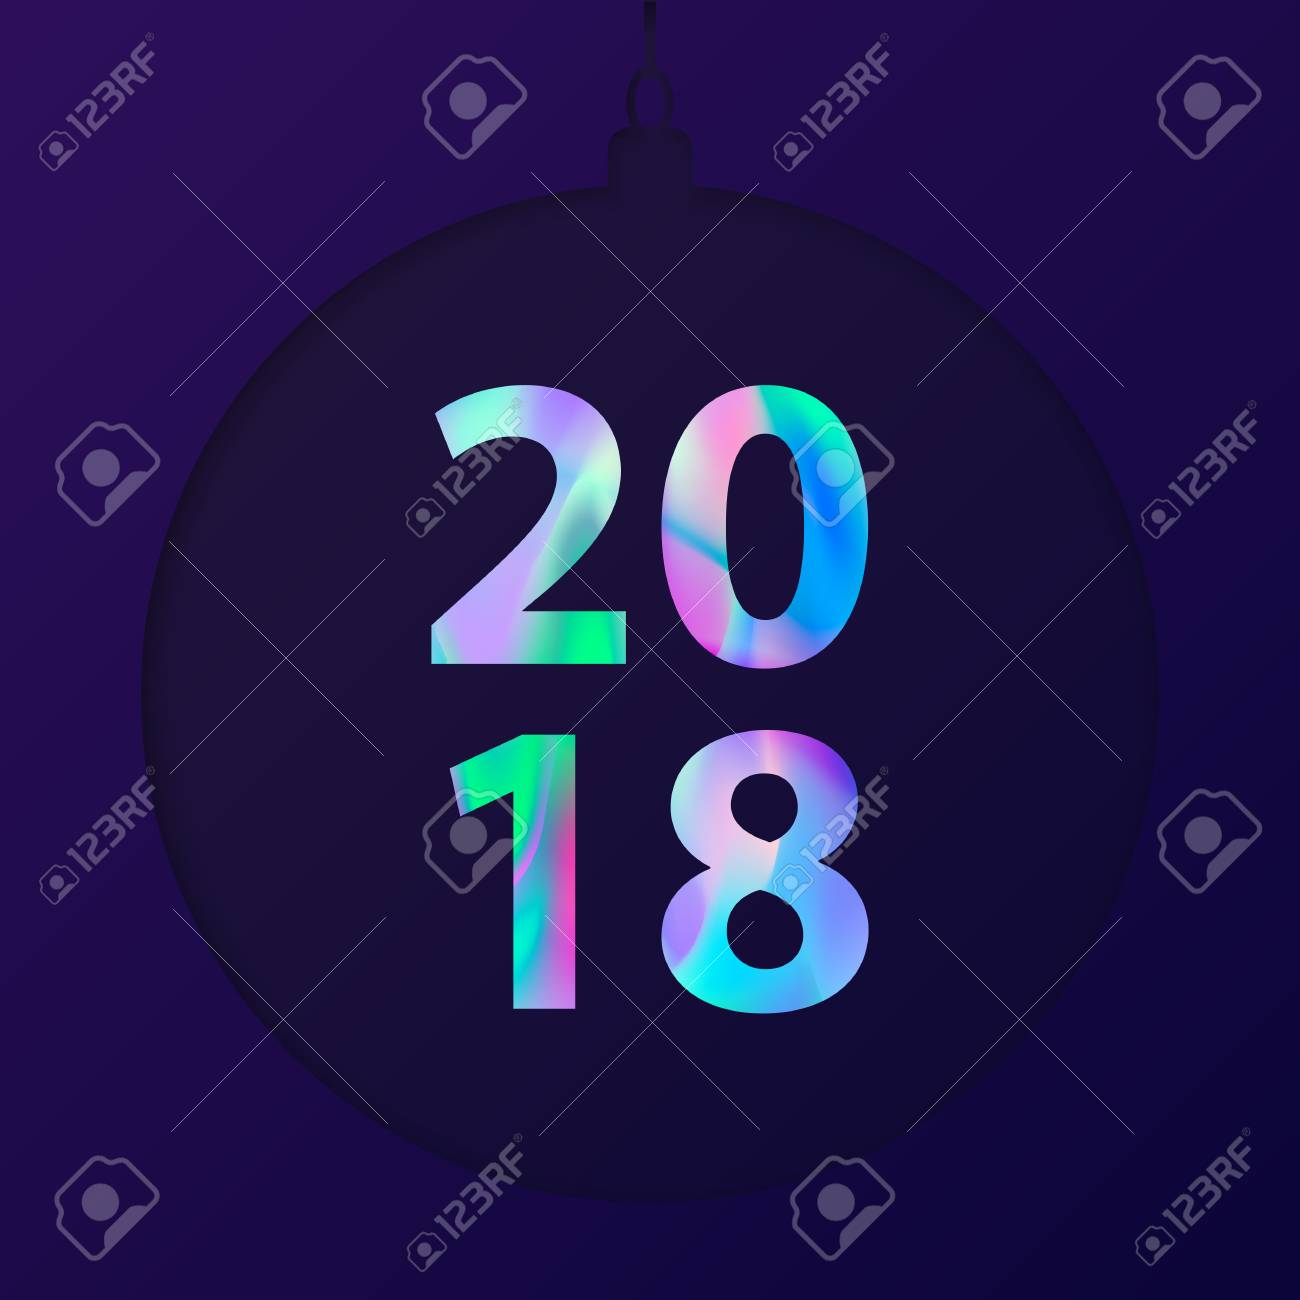 New year 2018 card in minimalist style greeting card with new year 2018 card in minimalist style greeting card with holographic effect material design kristyandbryce Gallery